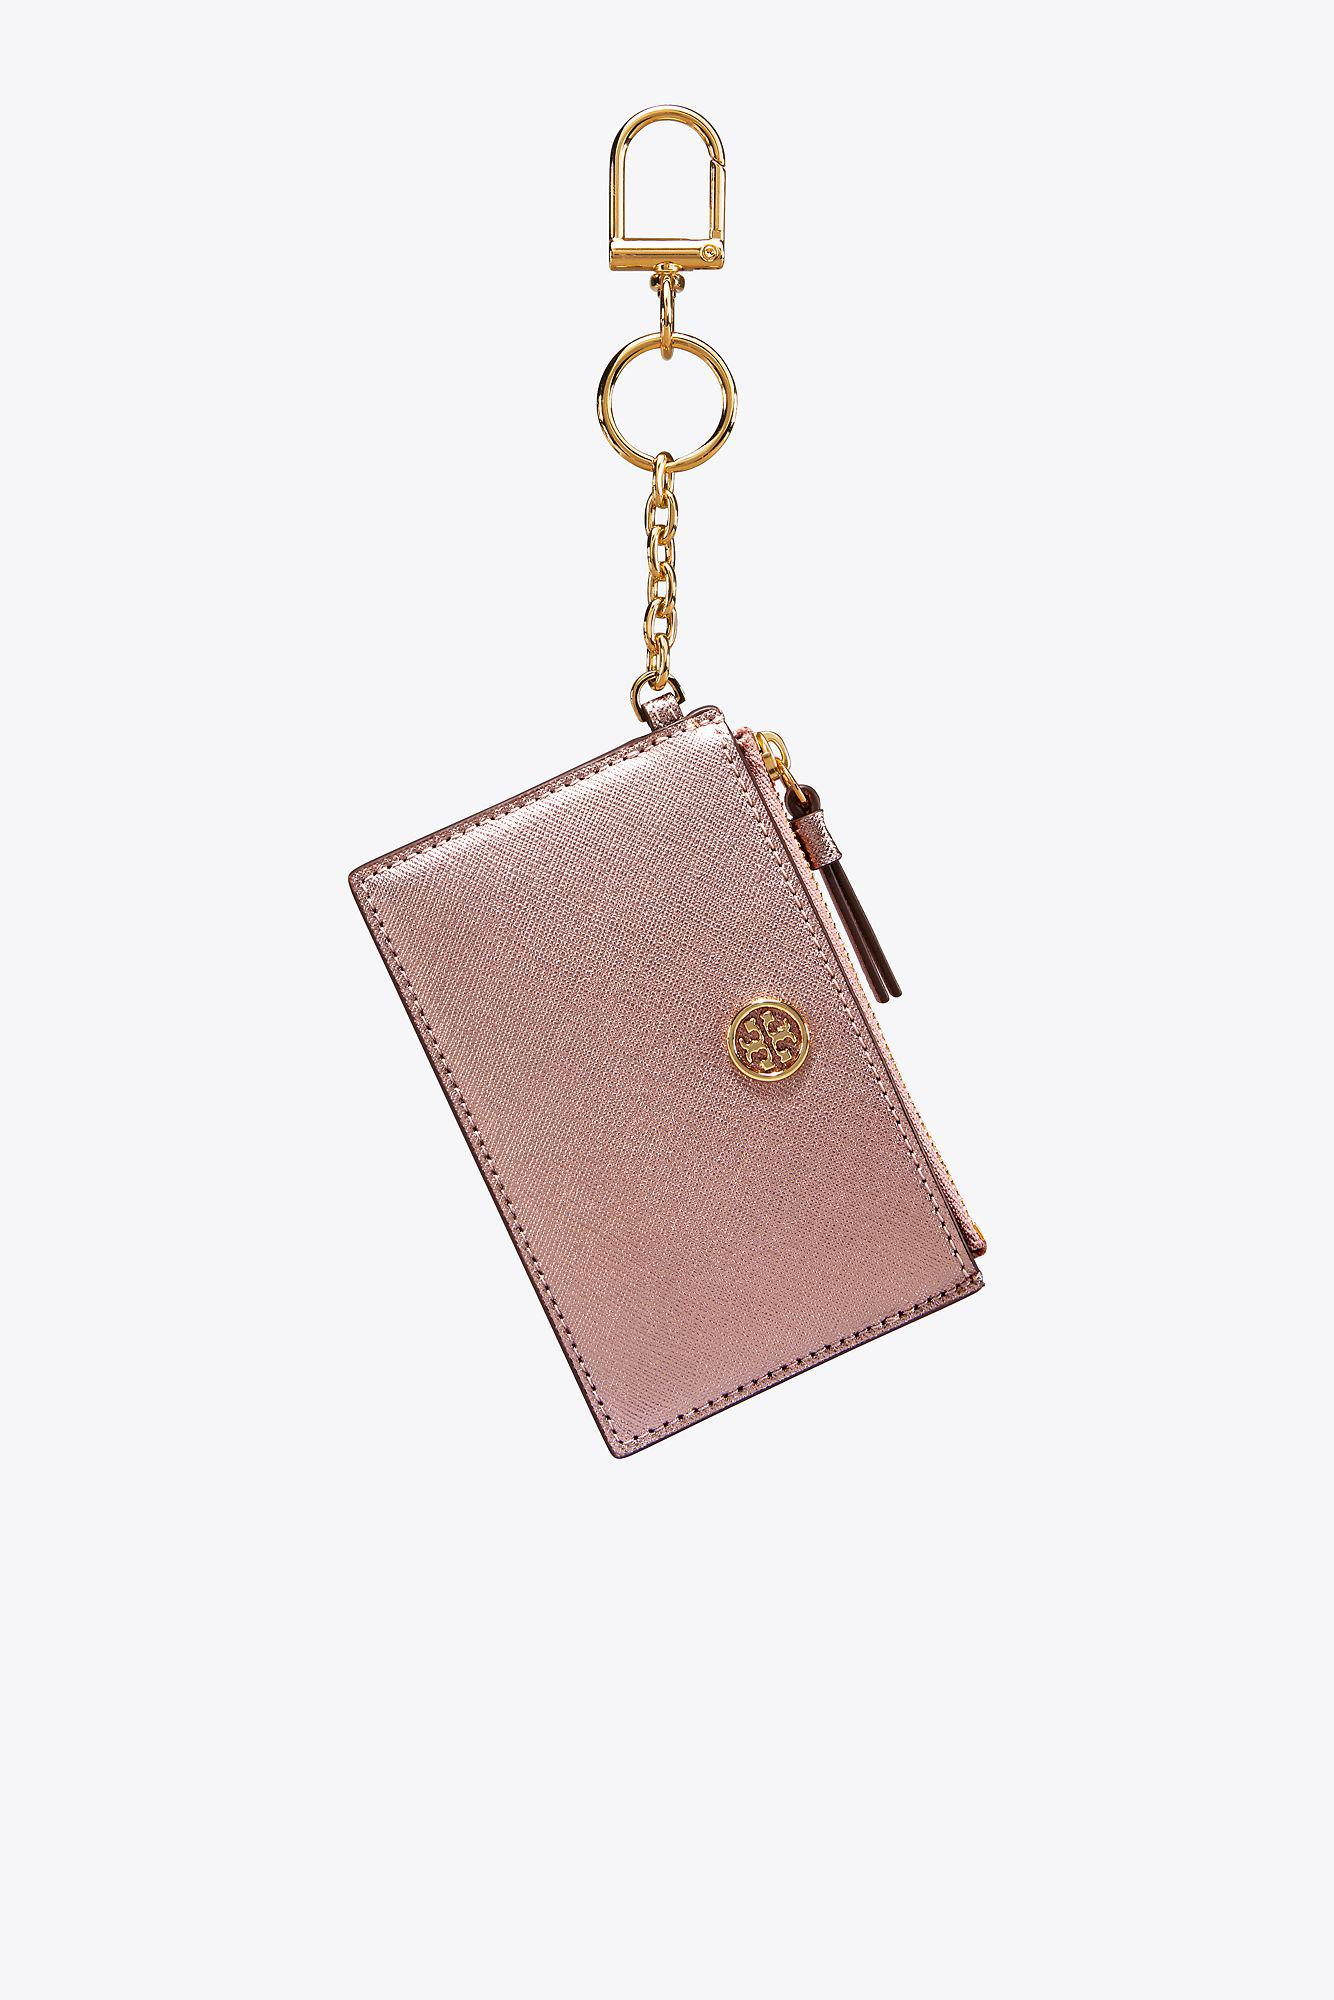 Tory Burch Leather Robinson Metallic Card Case Key Ring In Light Rose Gold Pink Lyst